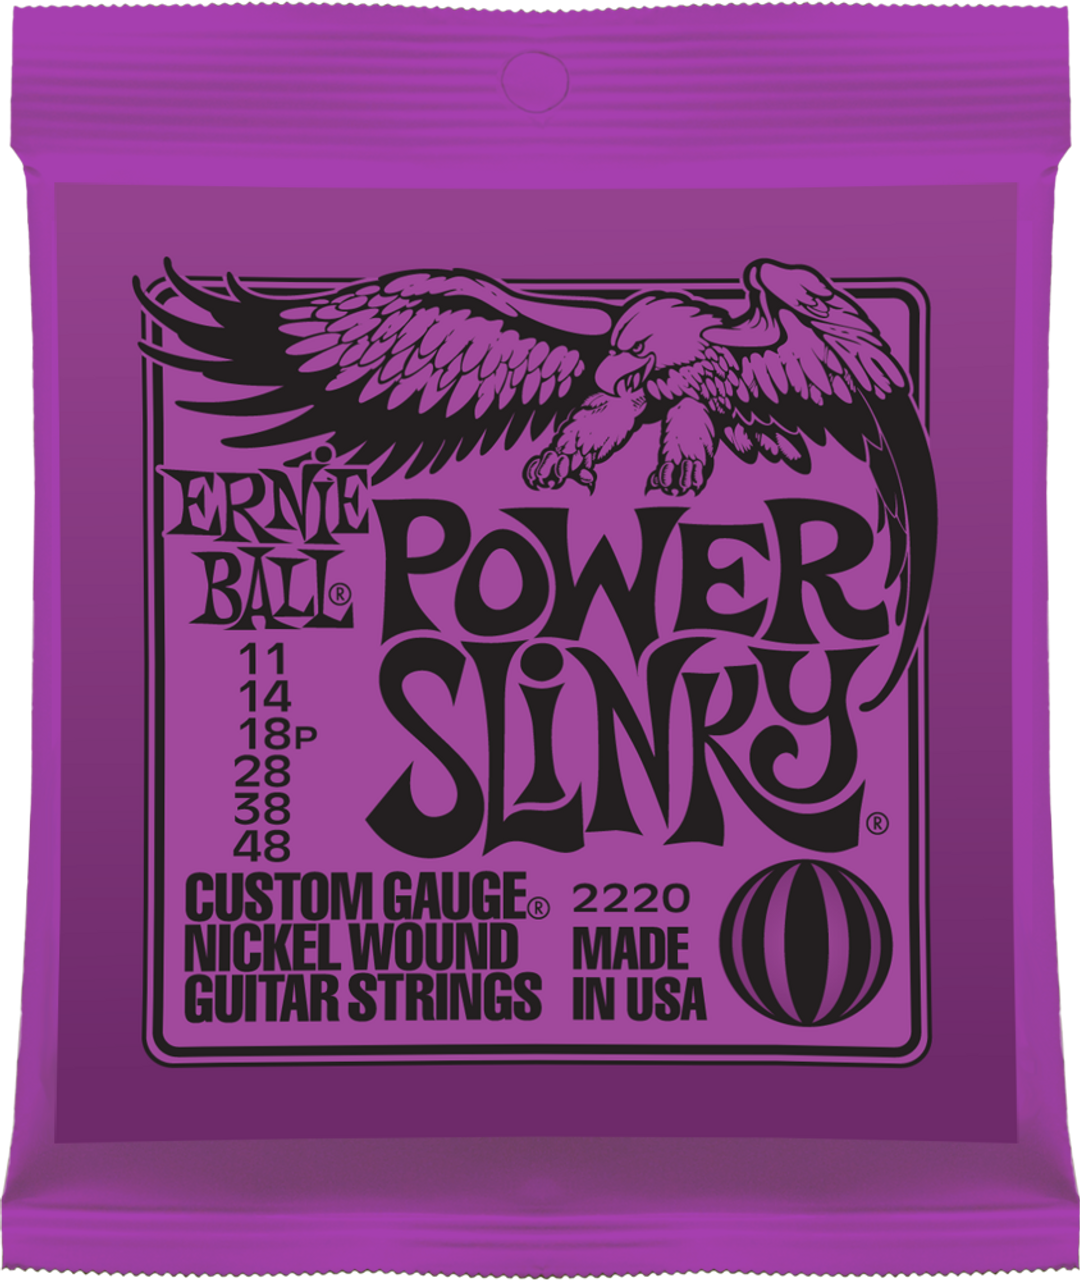 Ernie Ball 2220 Slinky Electric Guitar Strings